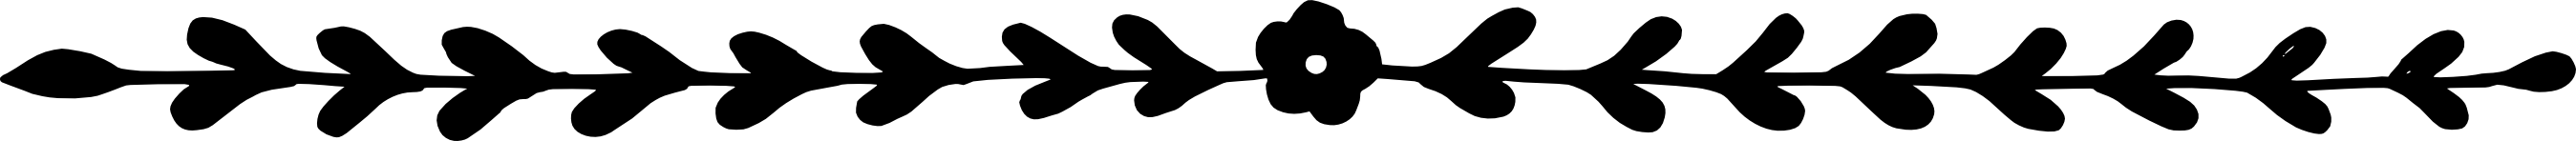 border transparent onlygfx. Flower line png